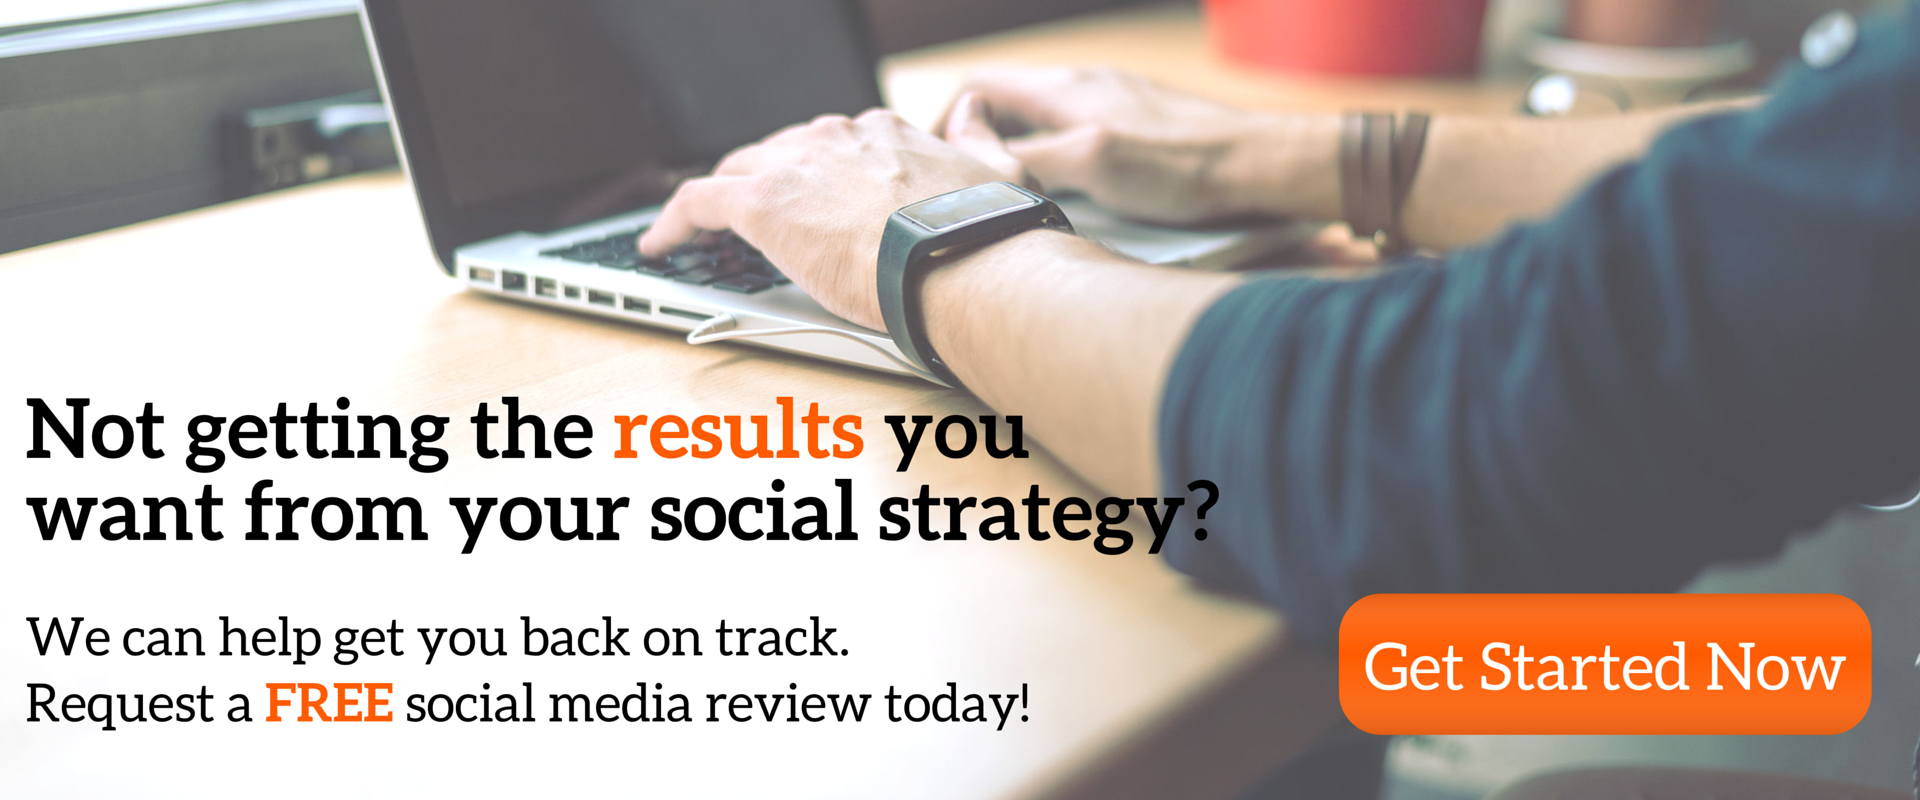 Attract clients and see results from digital strategy